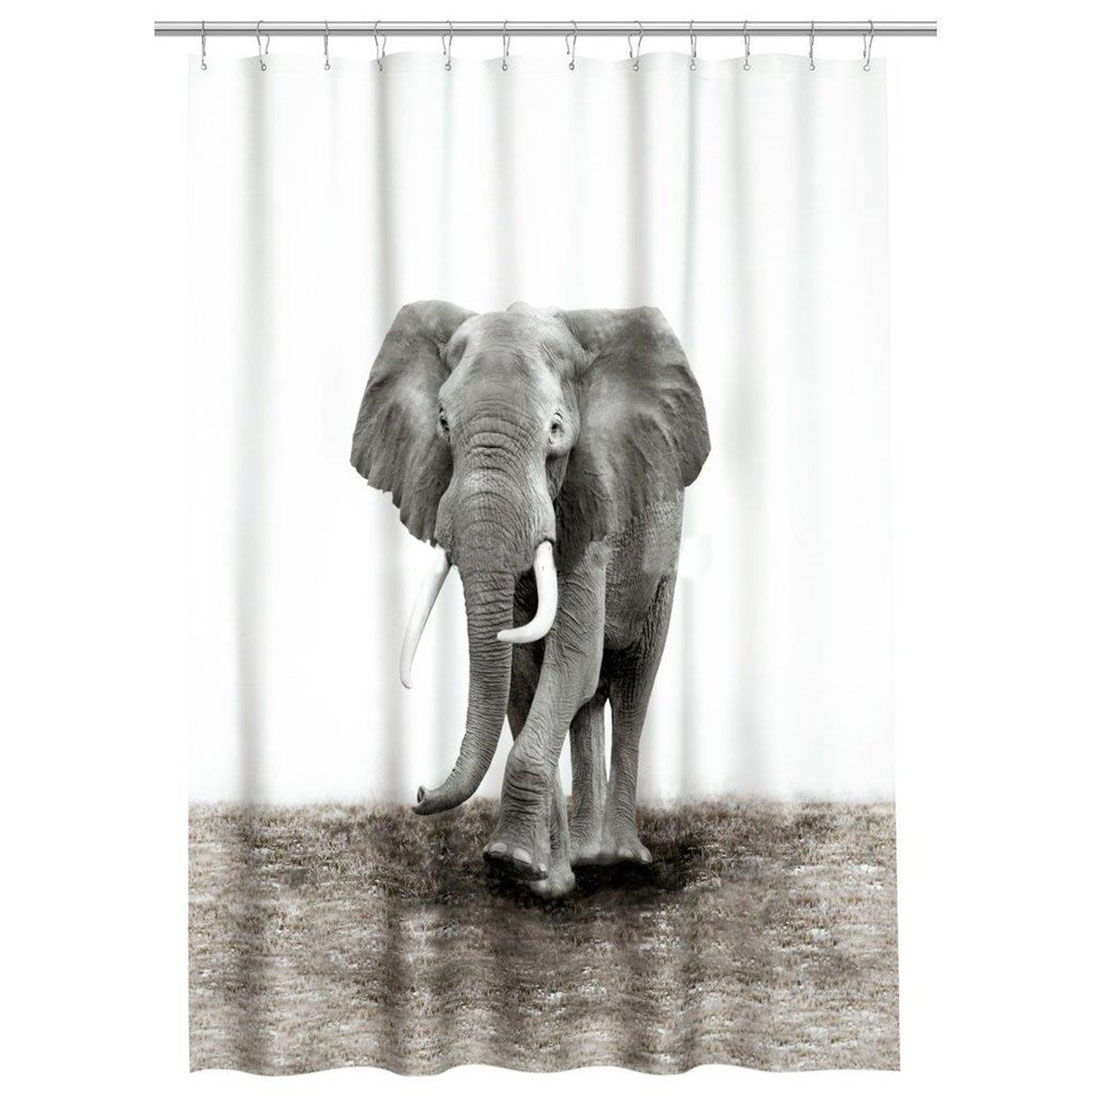 Shower Curtain Natural World Elephant Design Bathroom Waterproof Mildewproof Polyester Fabric With 72 Inch 12 Hooks